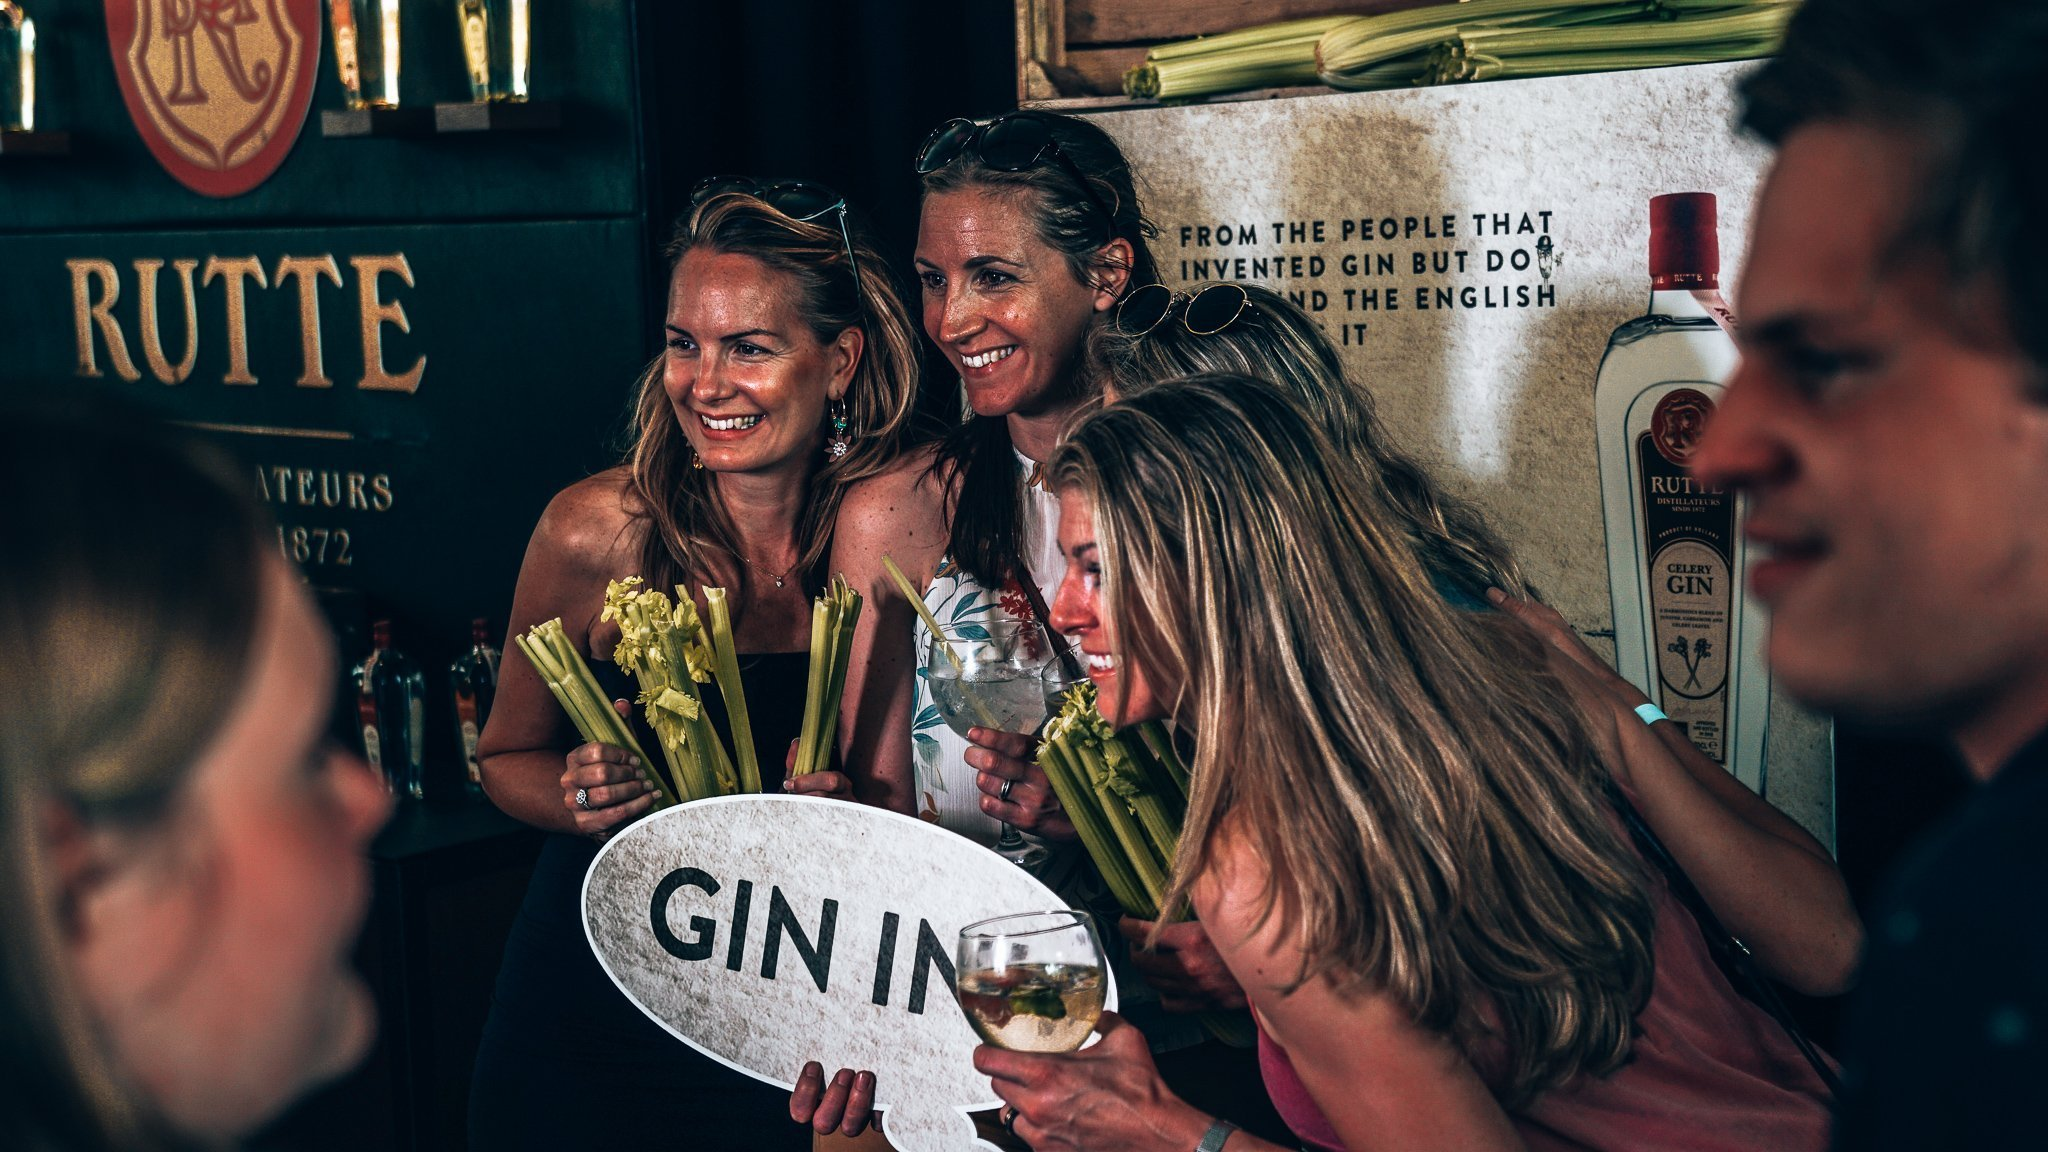 Rutte photobooth, Ginfestival Rotterdam, Alles over gin.02